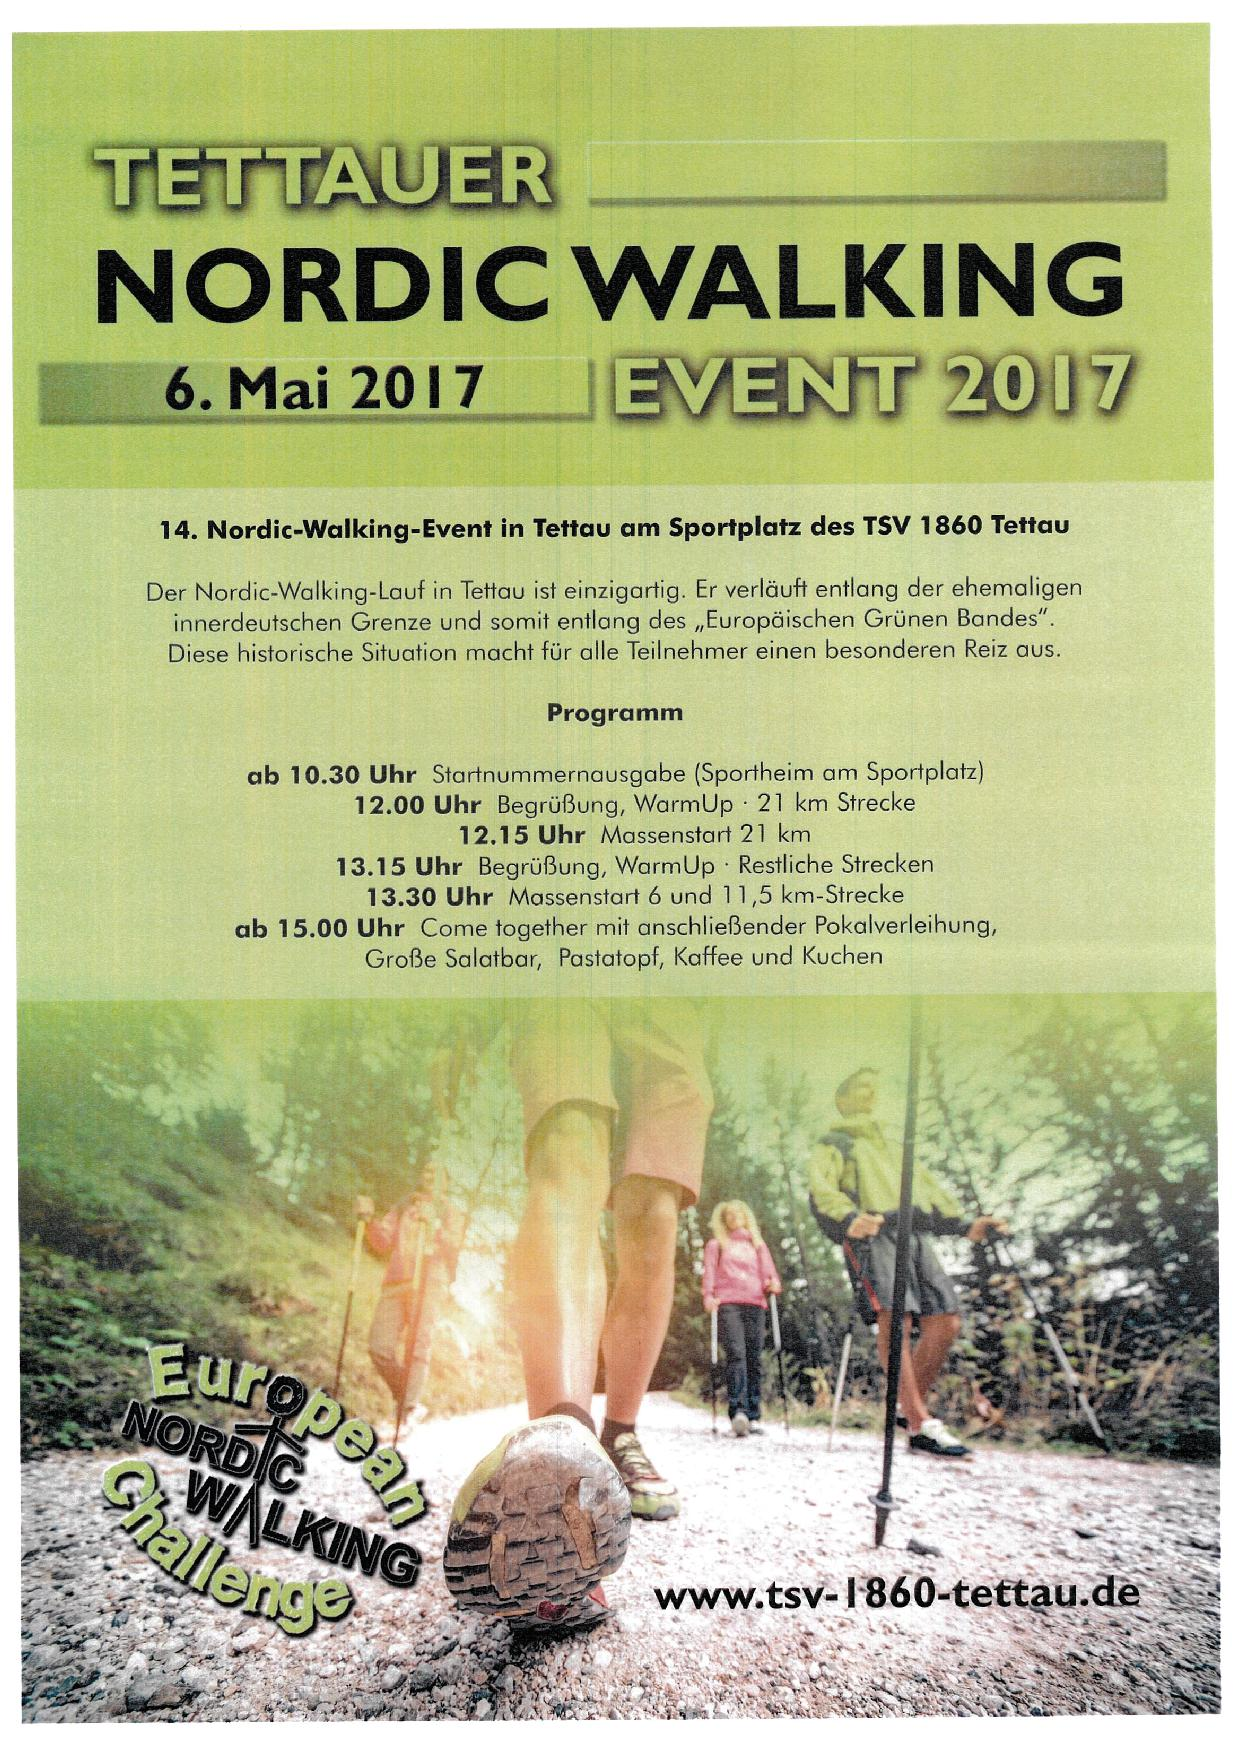 Nordic-Walking-Event 2017